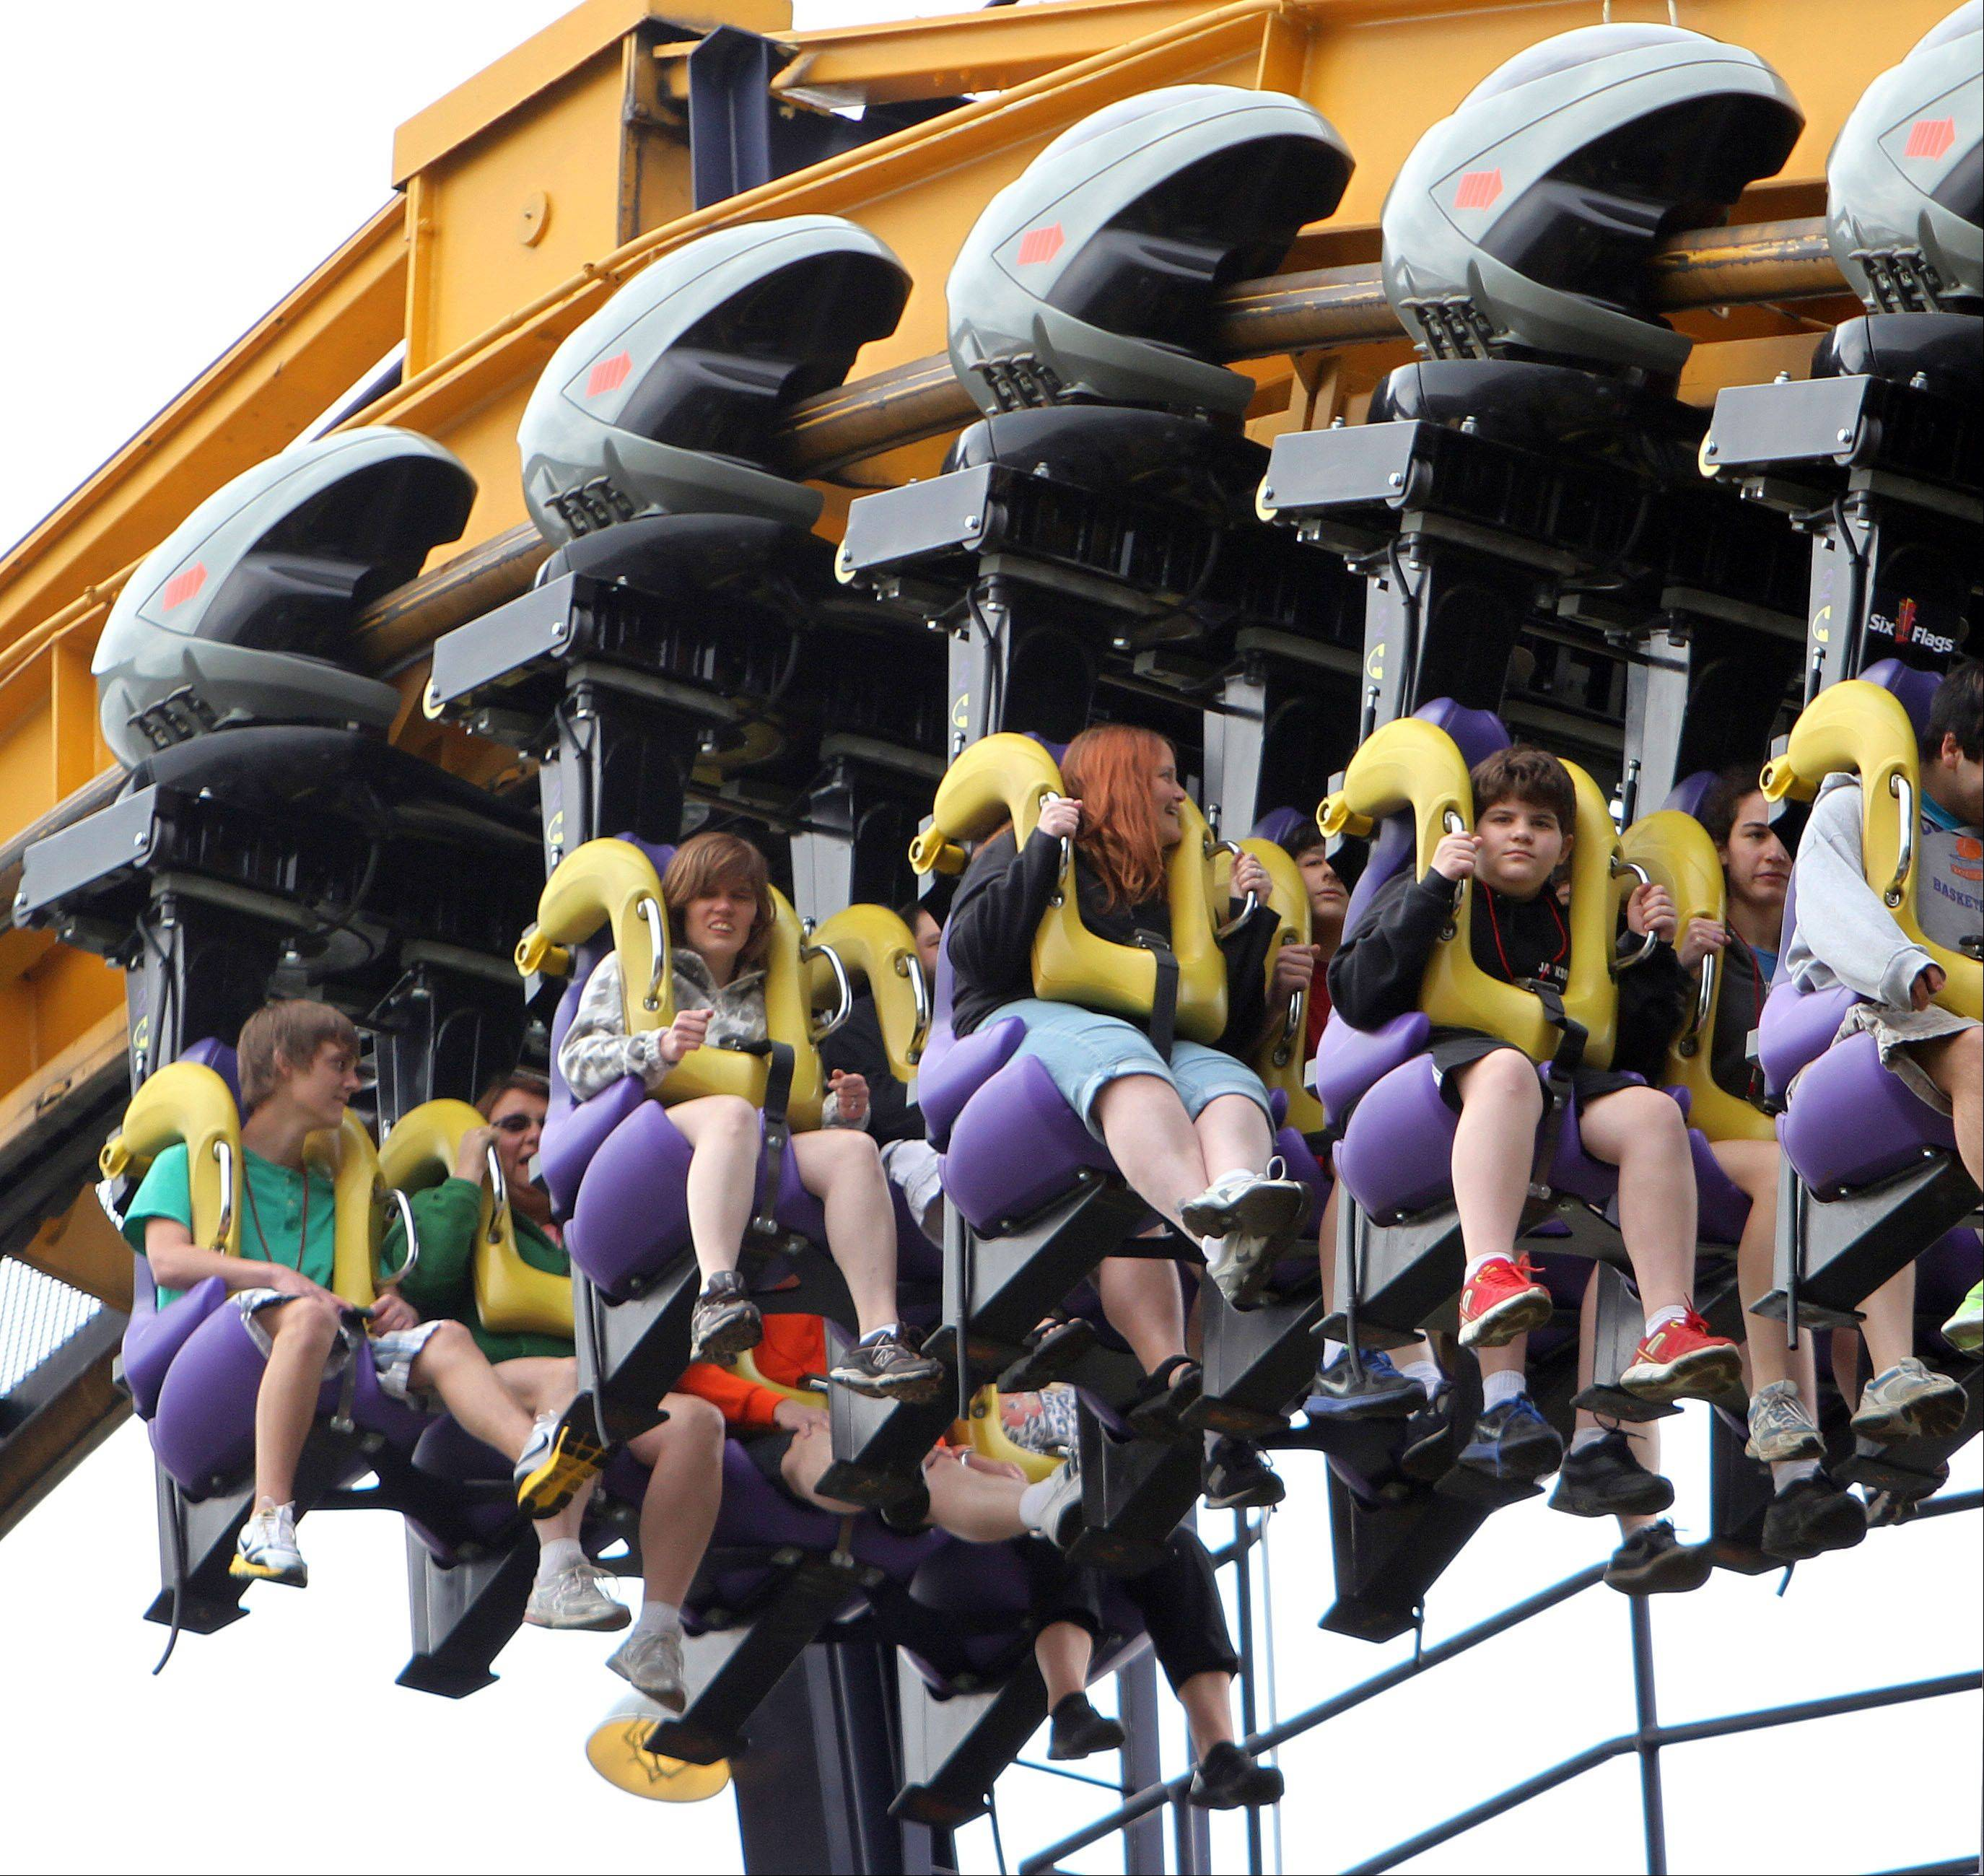 Riders try sitting backward on Batman: The Ride on Thursday at Six Flags Great America in Gurnee.